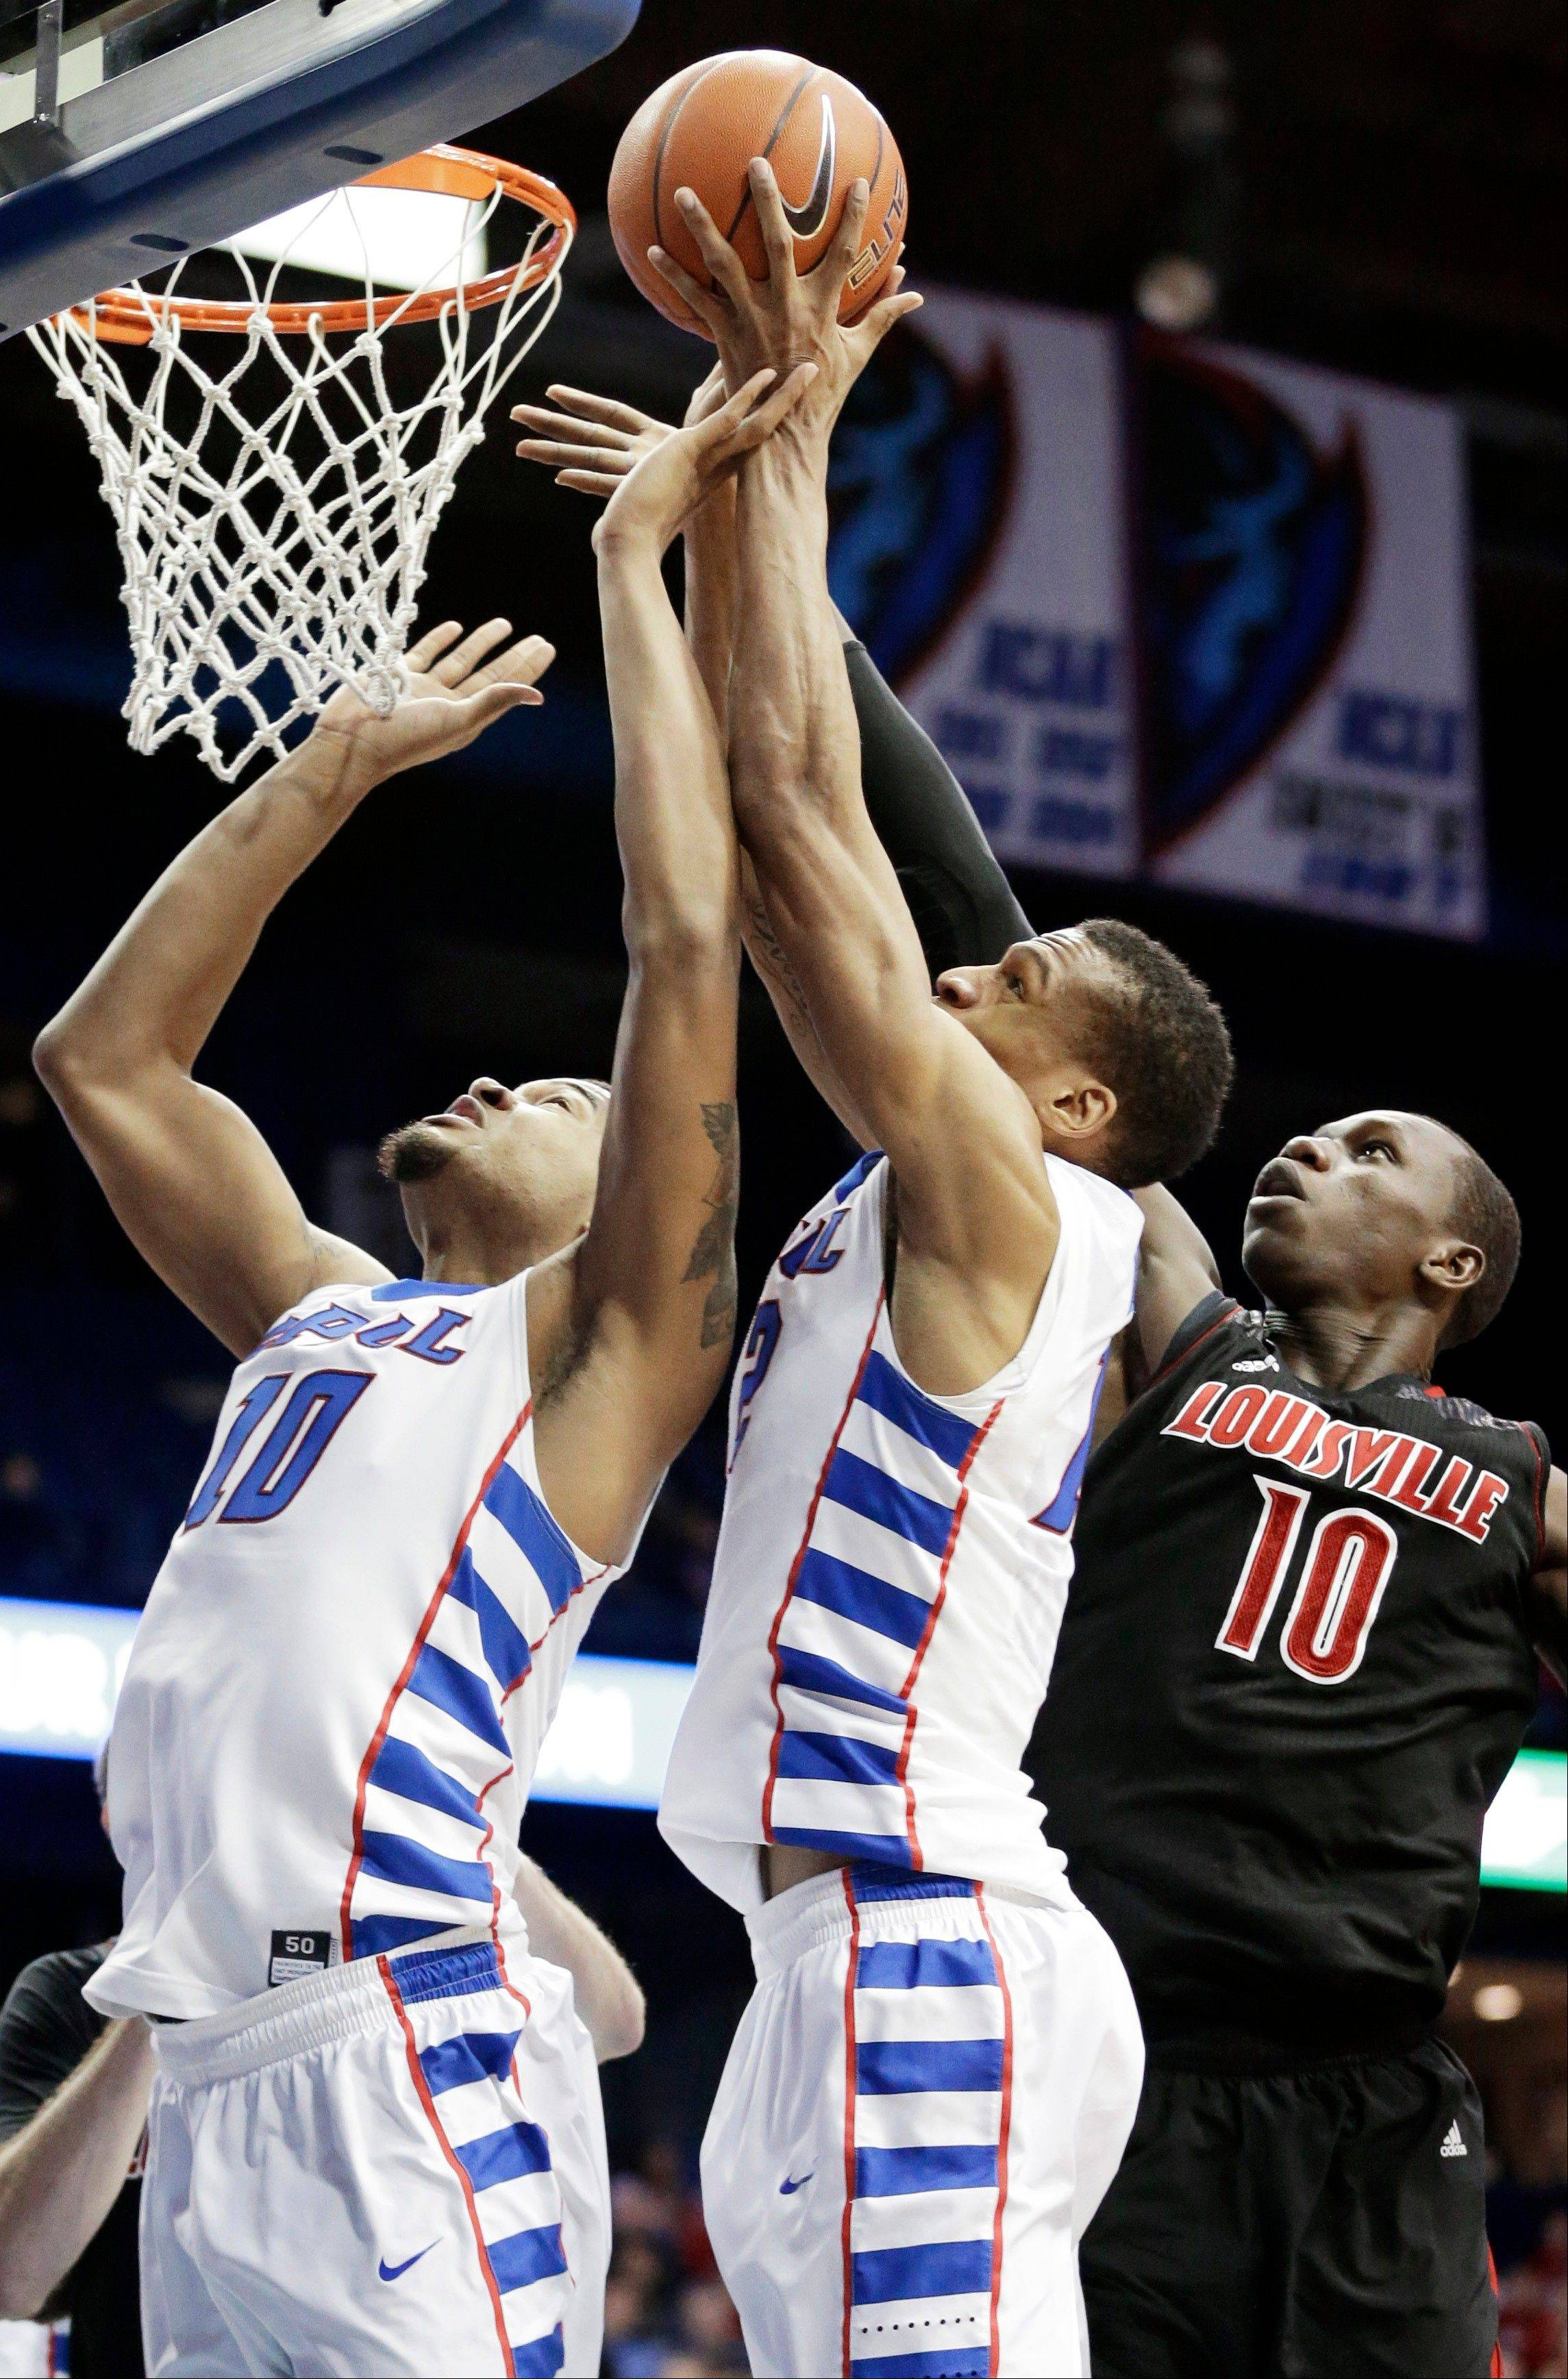 DePaul forward Cleveland Melvin, center, battles for a rebound with center Derrell Robertson Jr., left, and Louisville center Gorgui Dieng, of Senegal, during the second half of an NCAA college basketball game in Rosemont, Ill., on Wednesday, Feb. 27, 2013. Louisville won 79-58.